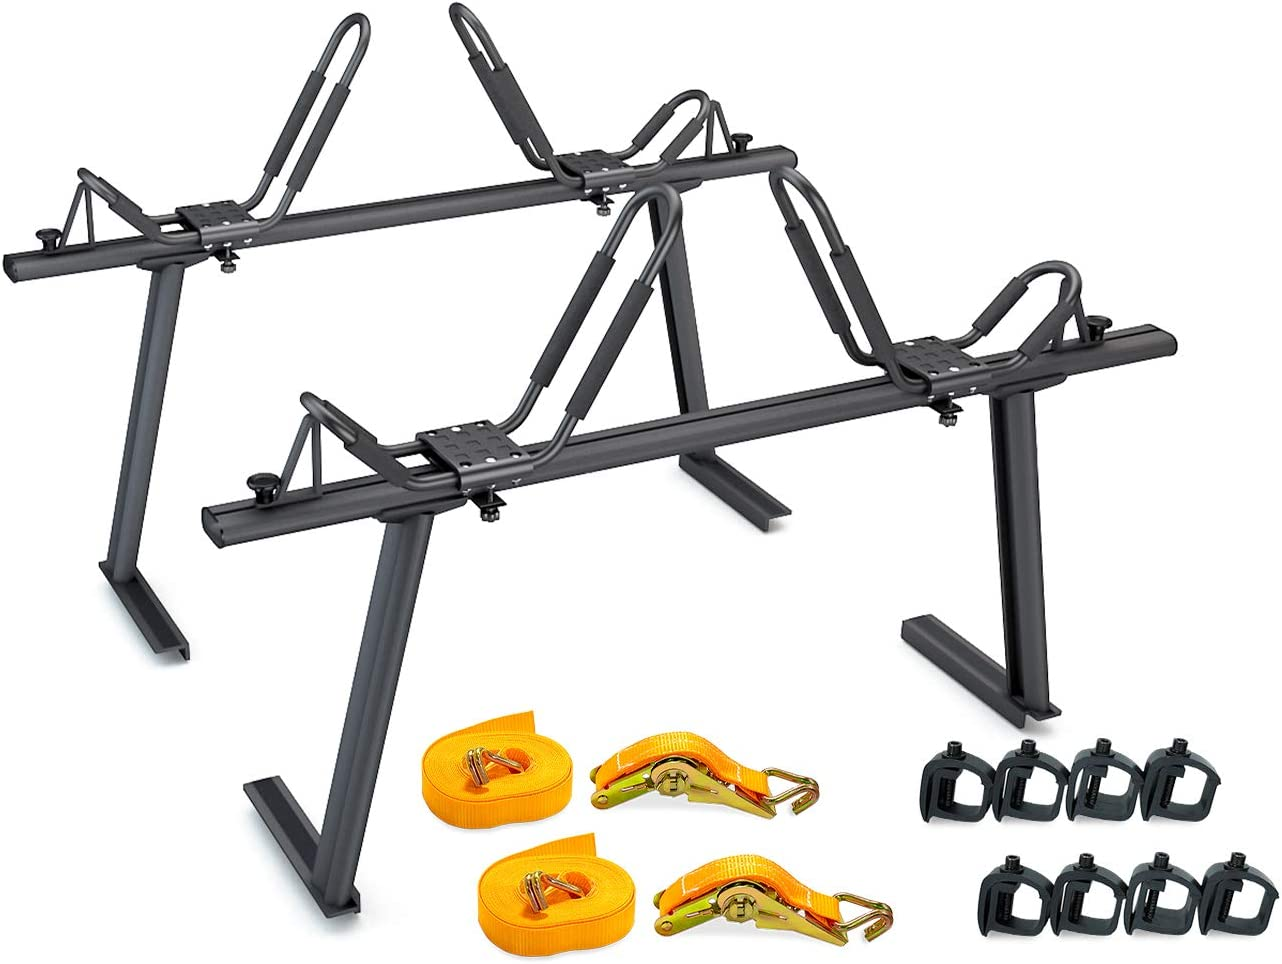 AA Products 2 set J-Rack Kayak (APX25)